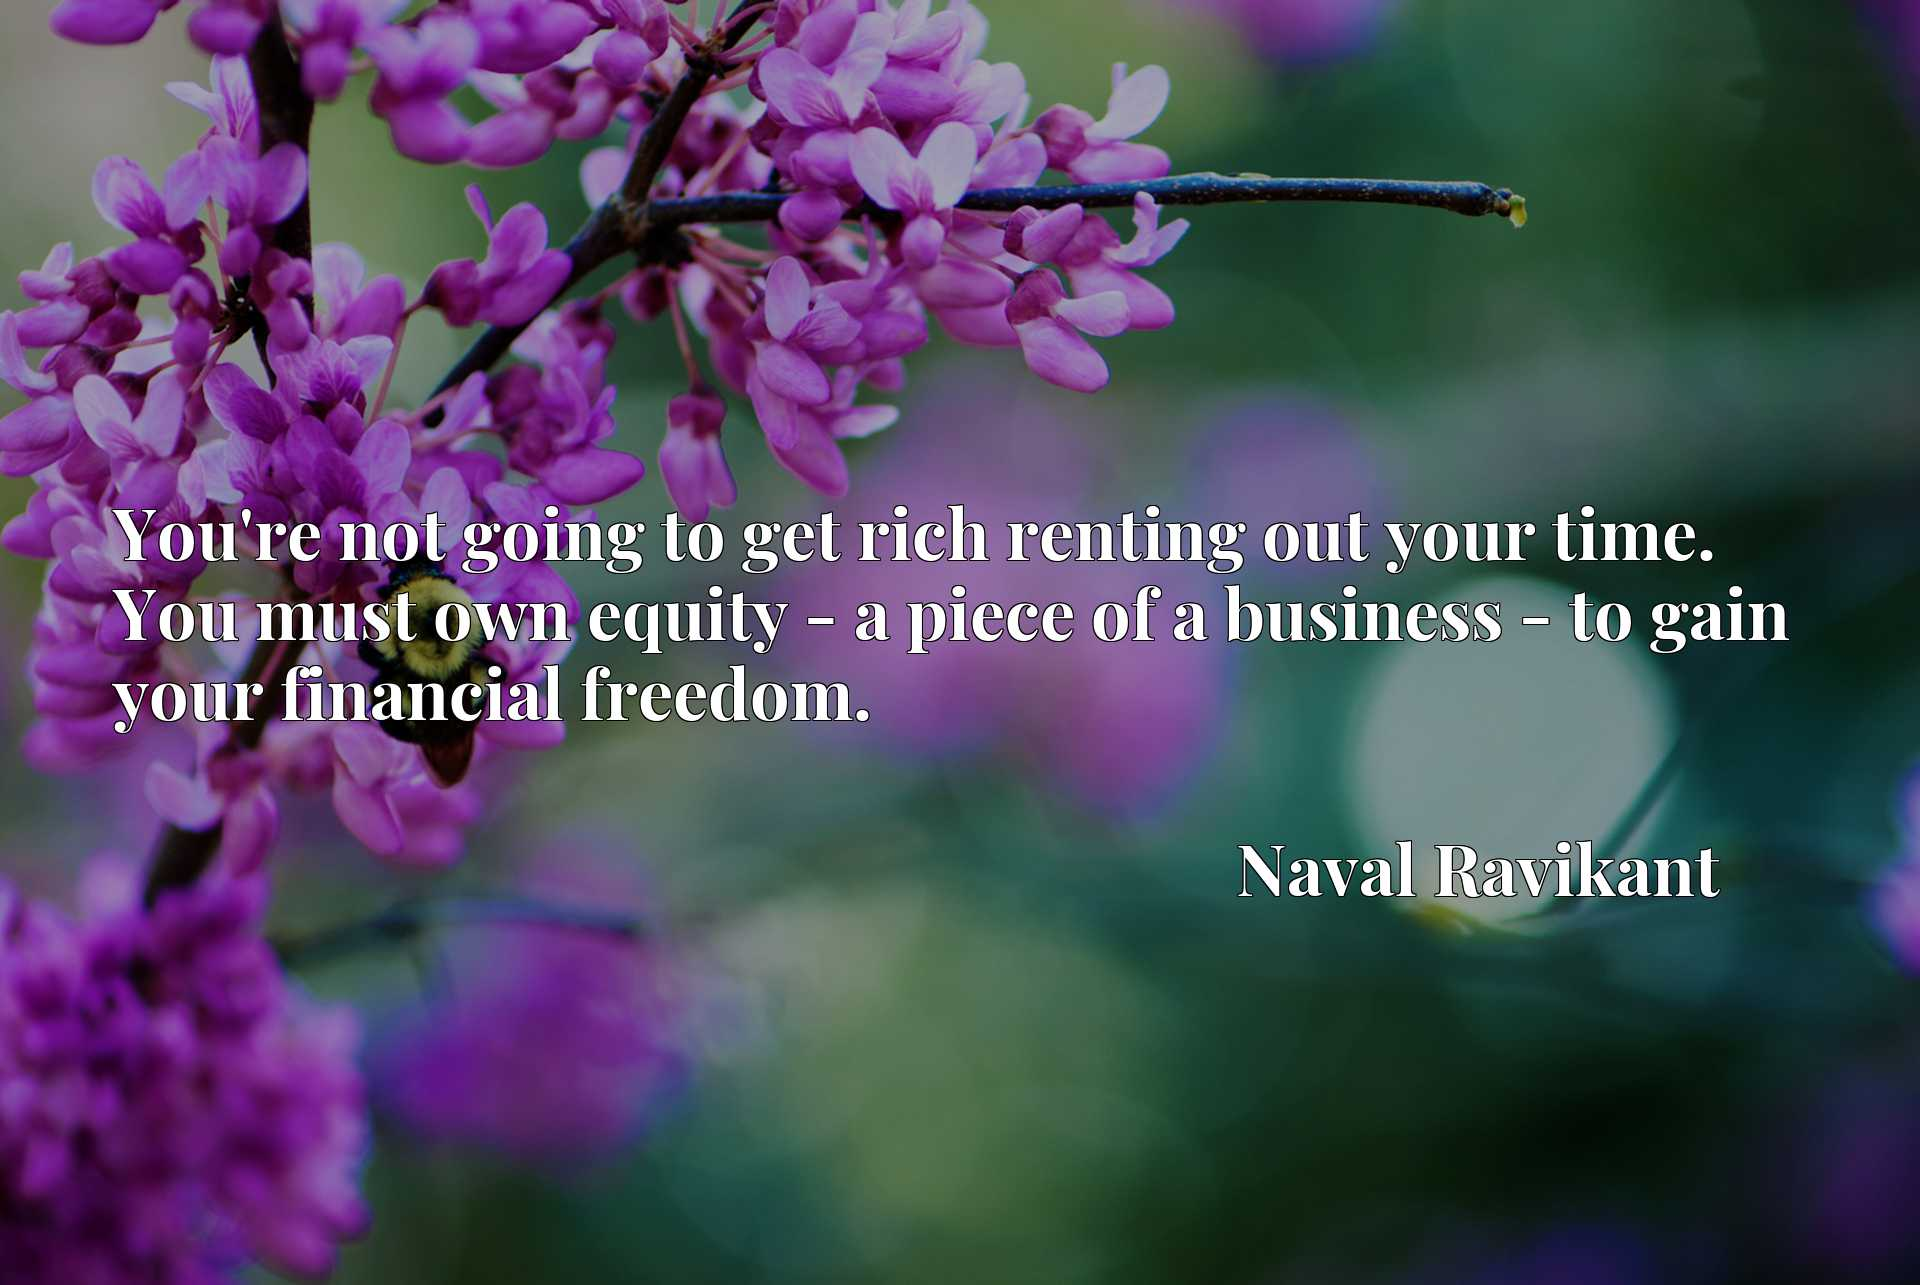 You're not going to get rich renting out your time. You must own equity - a piece of a business - to gain your financial freedom.